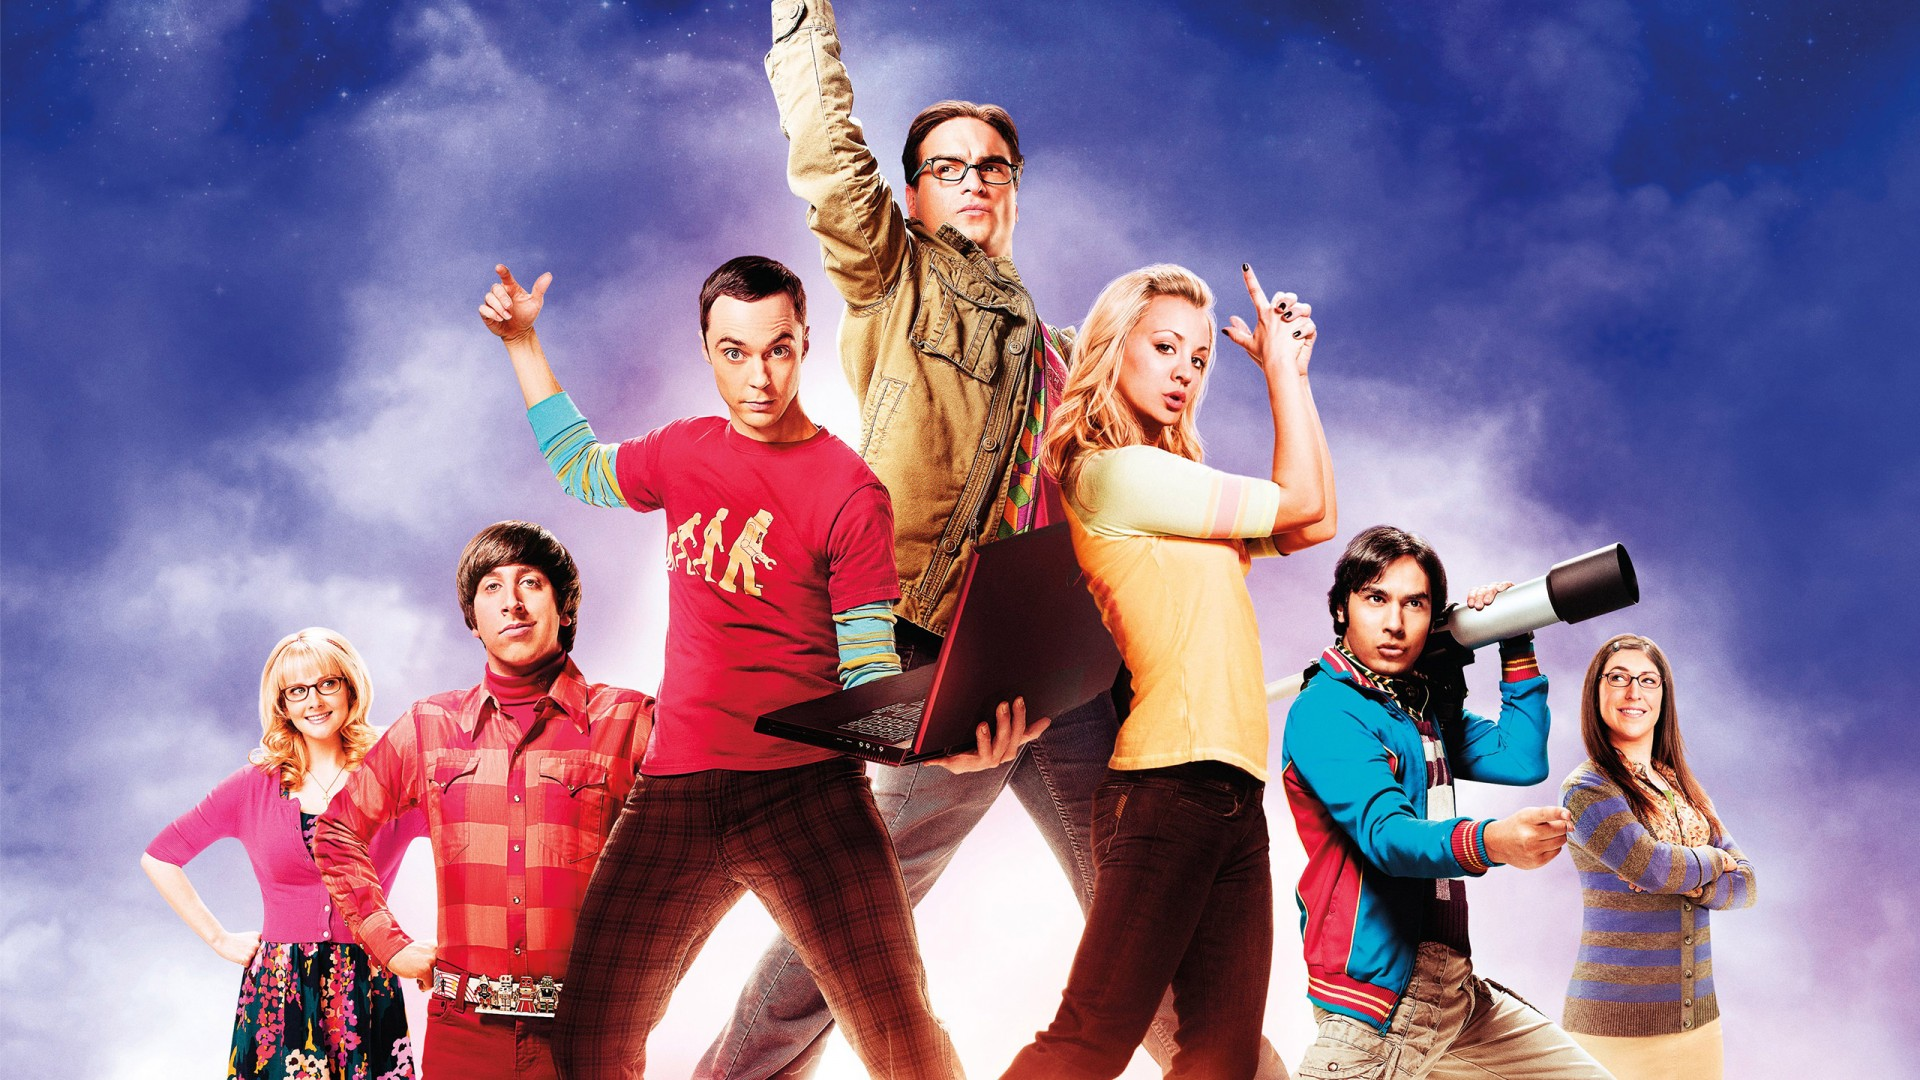 Android 3d Wallpaper Live The Big Bang Theory Tv Series Wallpapers Hd Wallpapers